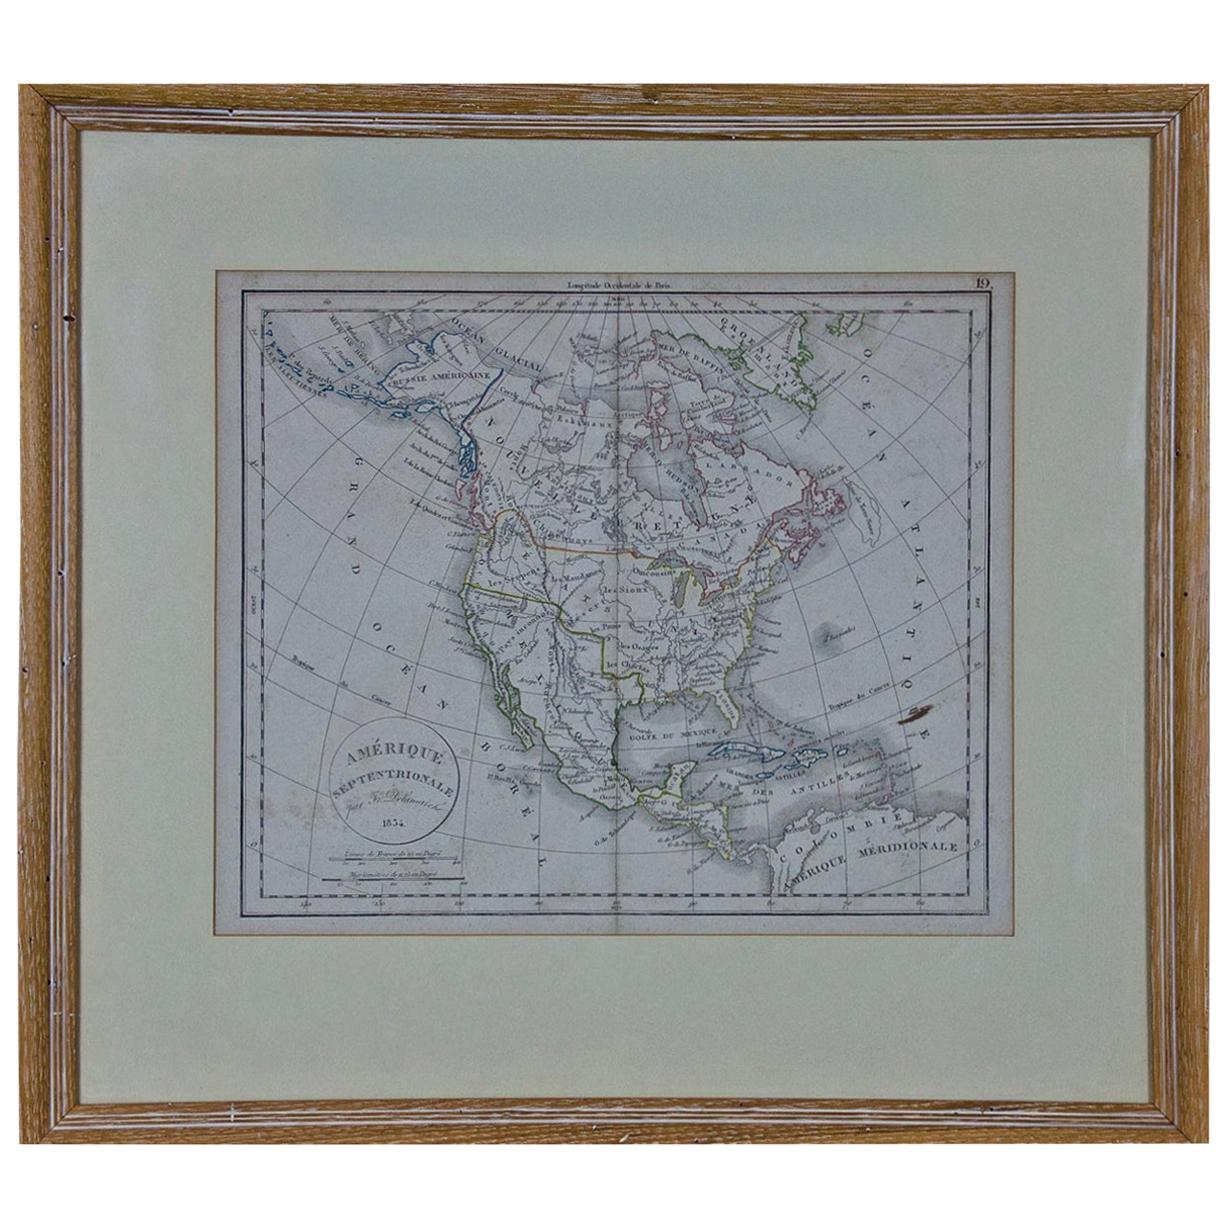 Framed 19th Century French Map of America: Amérique Septentrionale by Delamarche